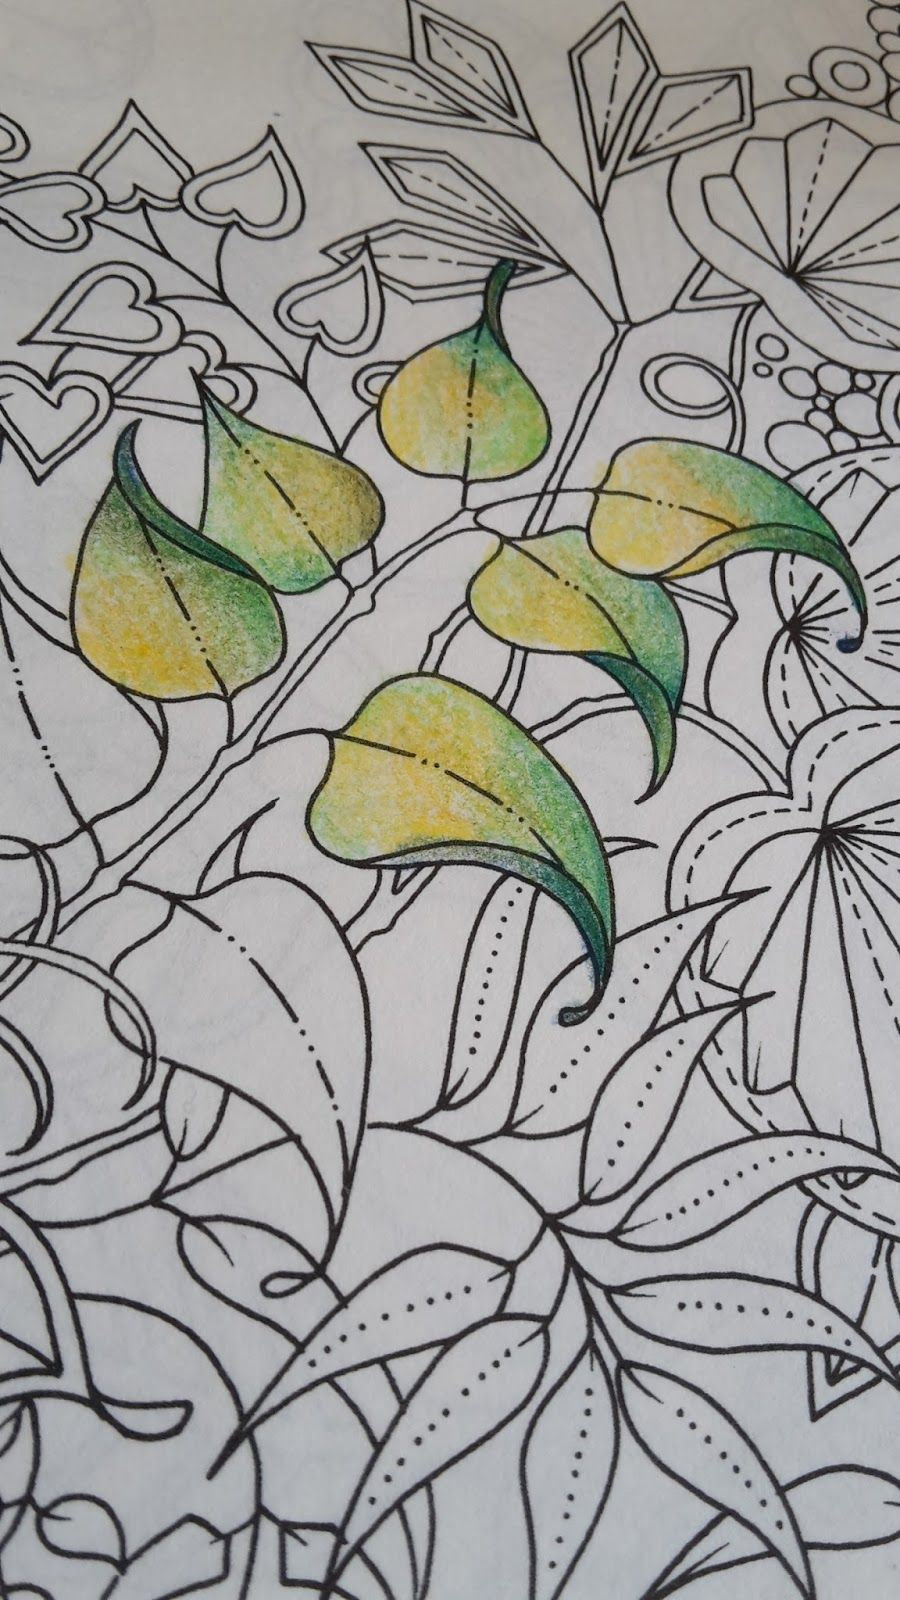 It Also Looks Like The Pencils Do Well On Different Types Of Paper My Old Bruynzeel Set Very In Secret Garden Colouring Book And